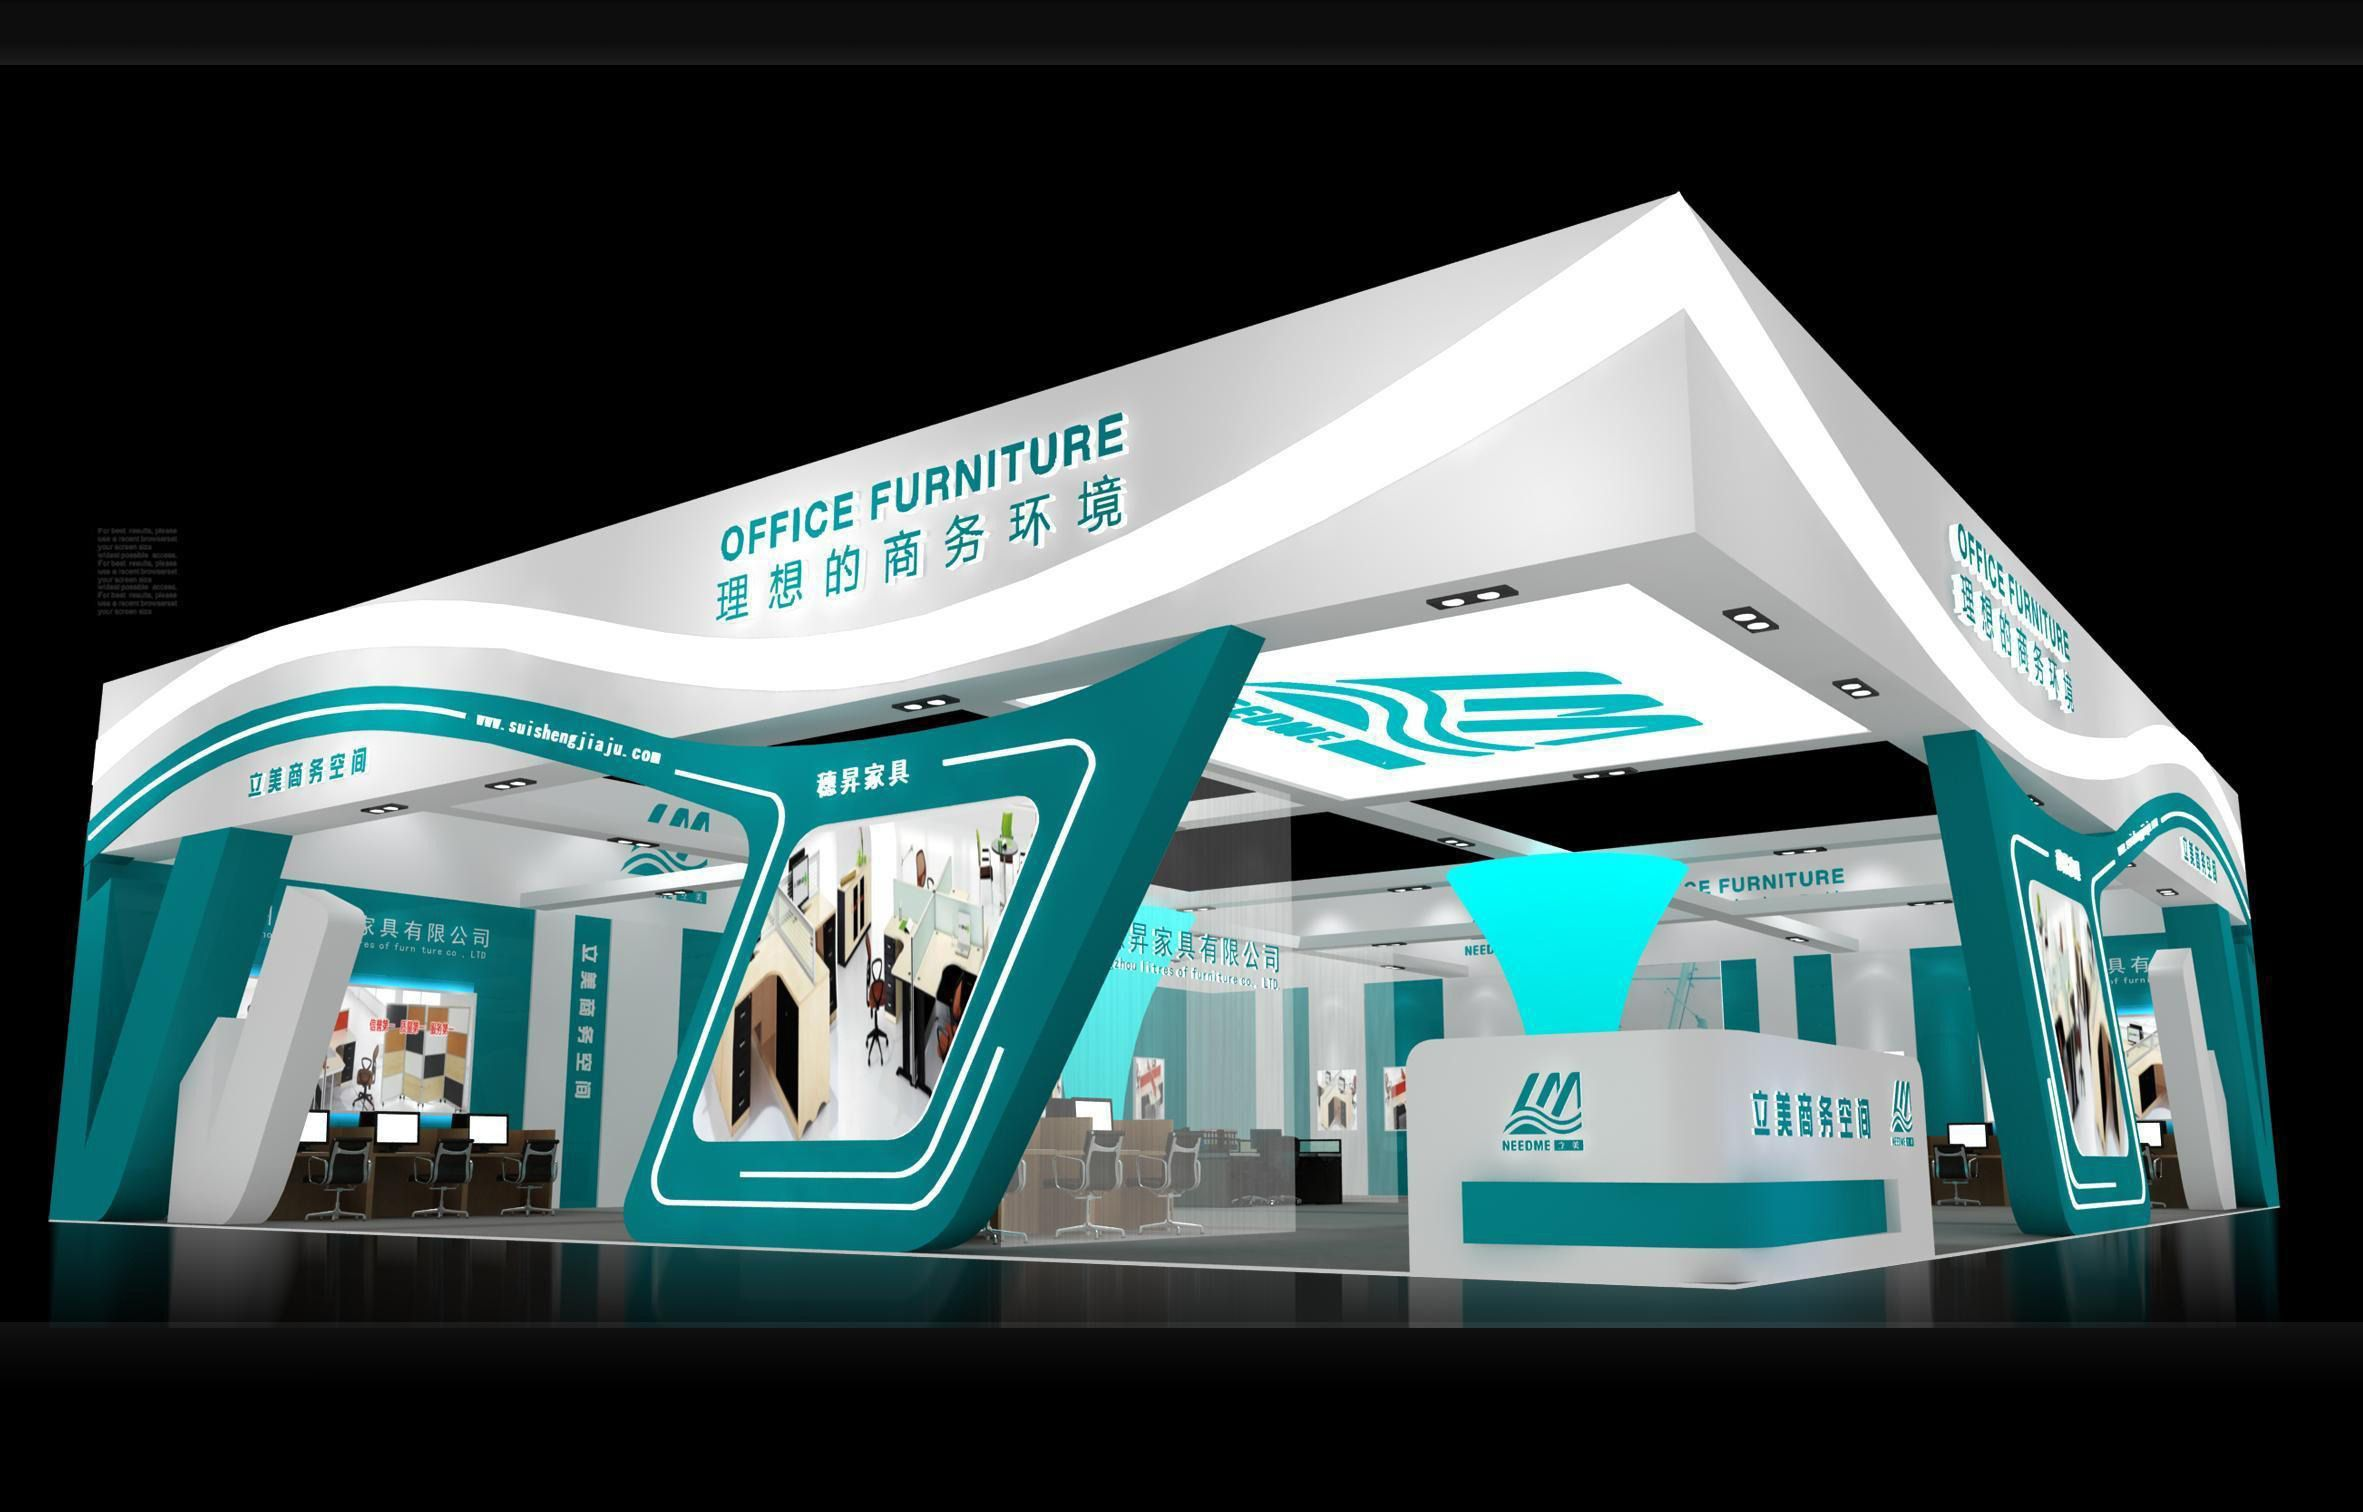 Exhibition Stand Sketchup : Exhibition booth sketchup ค้นหาด้วย google art